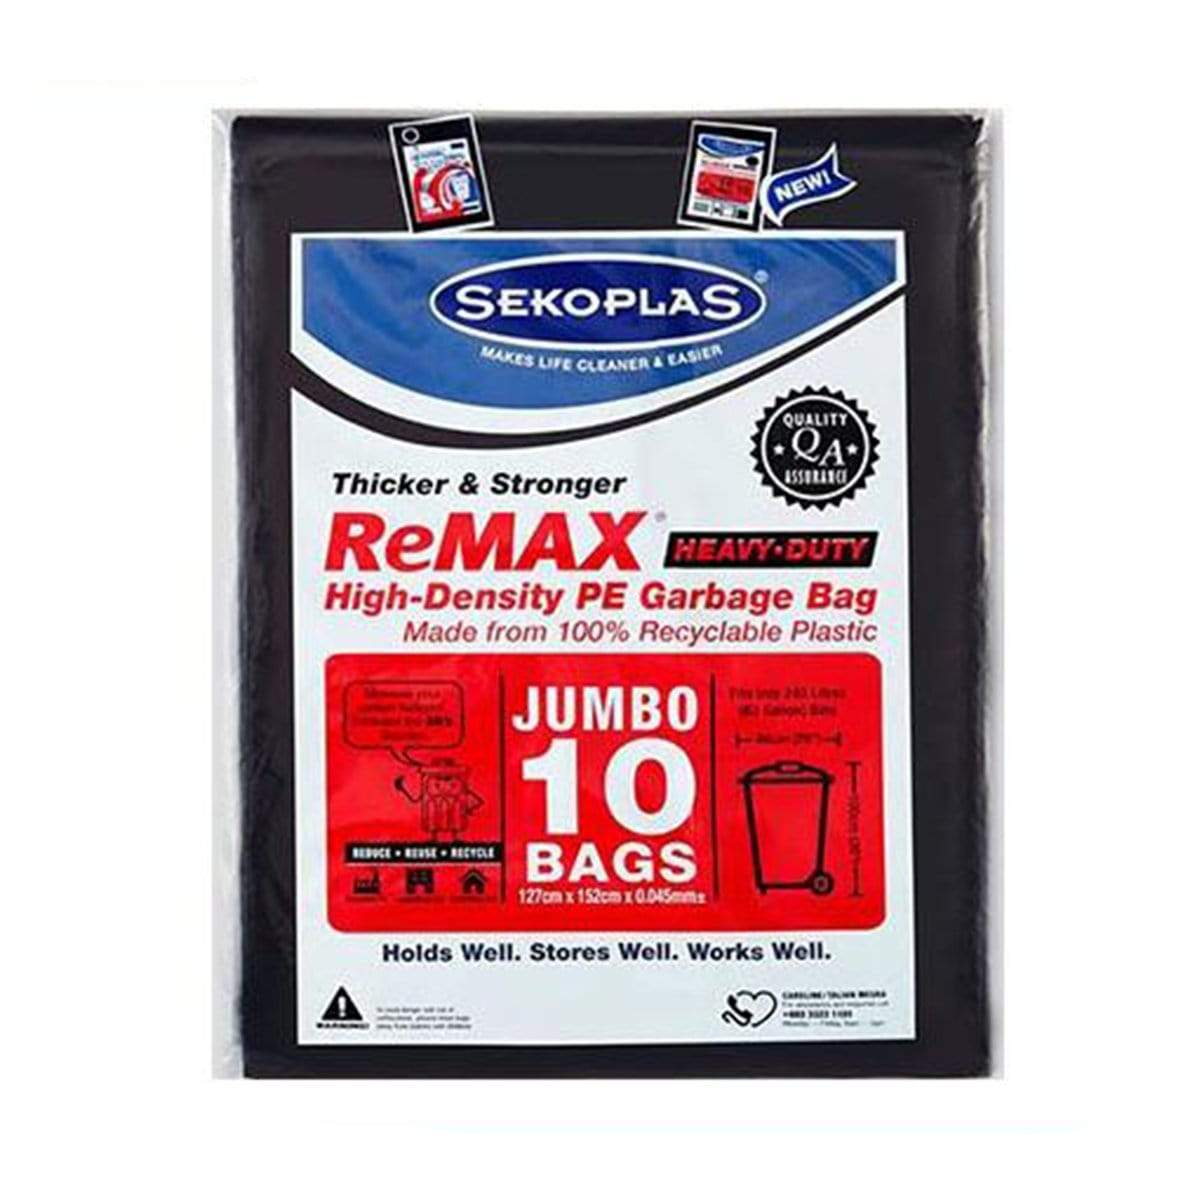 Remax Black Garbage Bag Jumbo 10pc